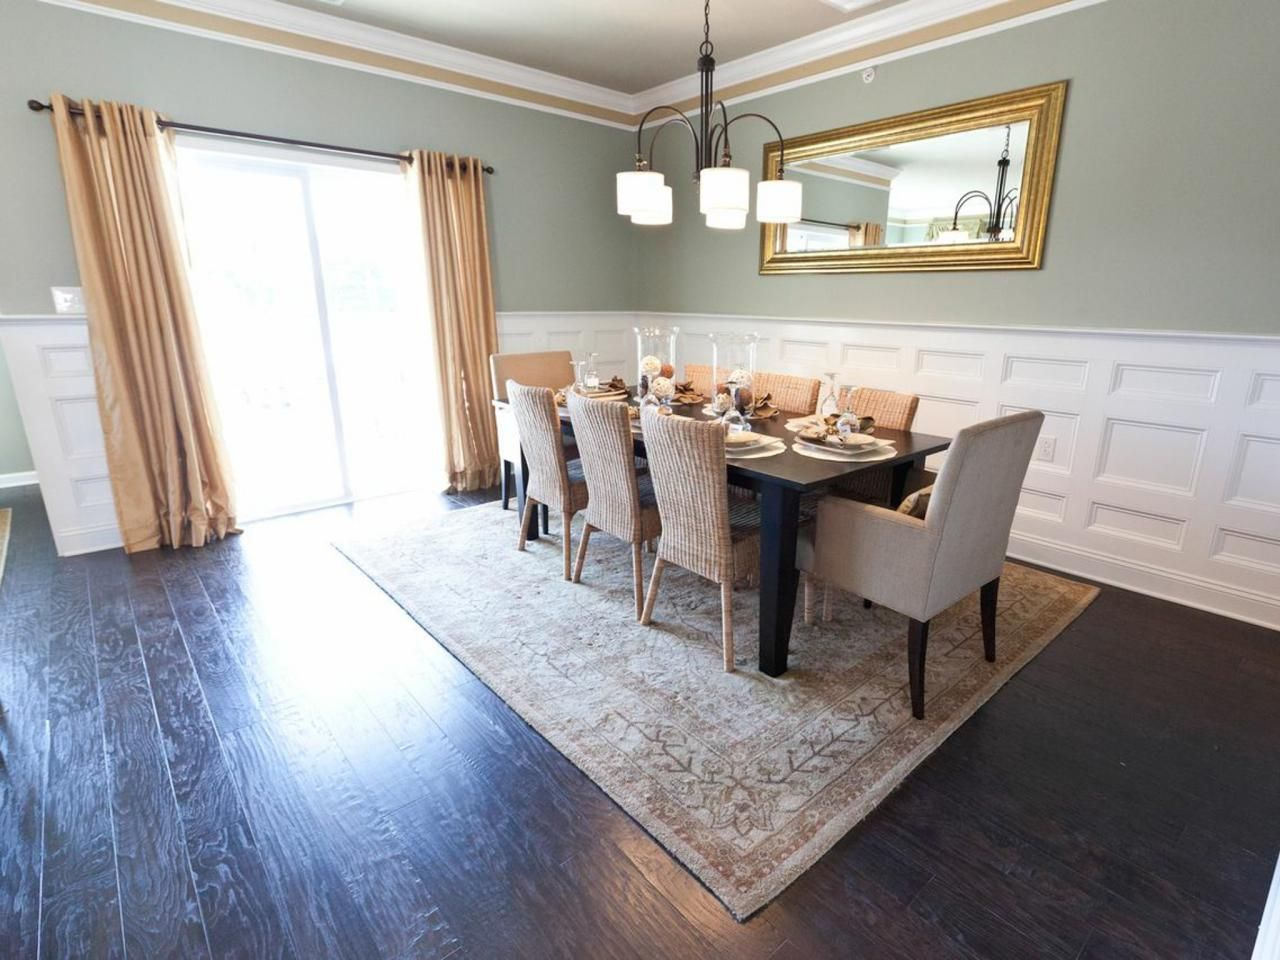 Superior Wainscoting Dining Room Ideas Part - 10: Dine In Elegance In This Gray-blue Dining Room With Wainscoting Detail  Trim. Crown Molding With A Taupe Stripe Highlight The Architectural Detail  And Relate ...